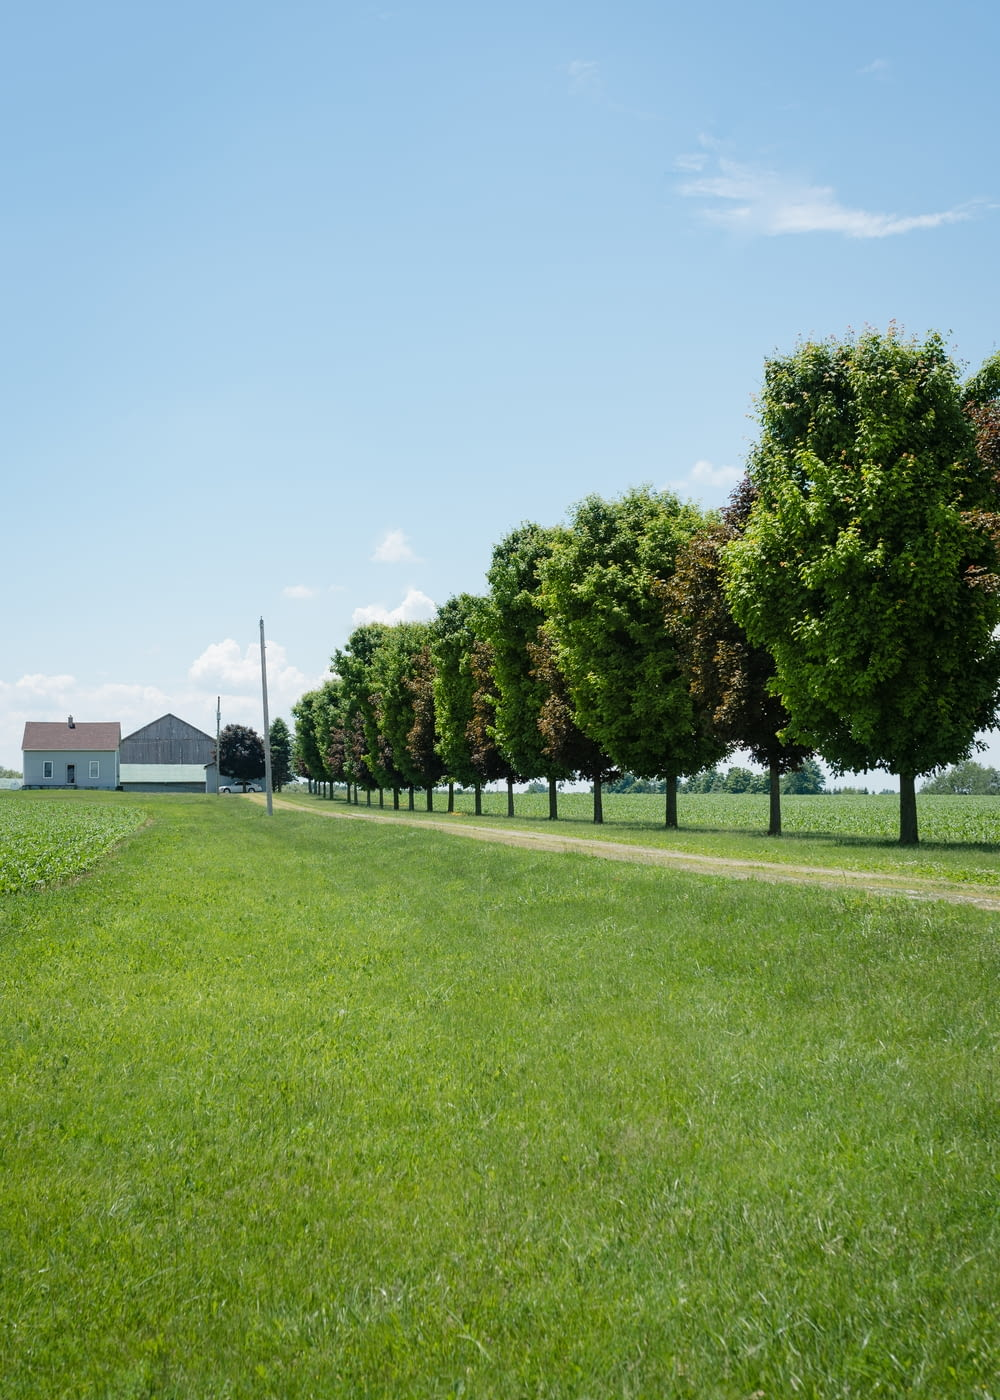 green grass field with trees and houses